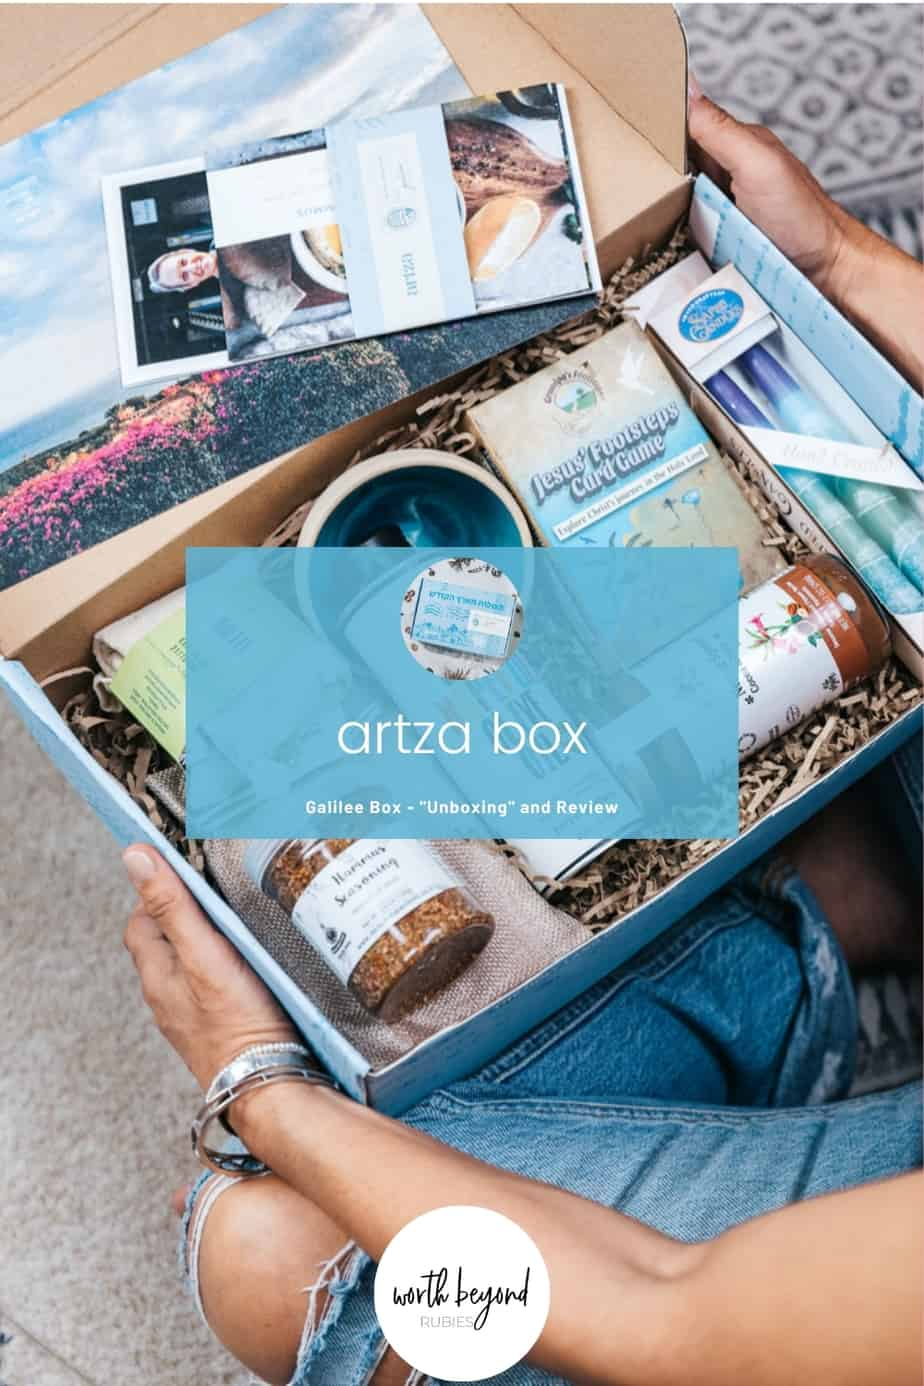 The Artza Box Galilee box open on a woman's lap and text that says Artza Box - Galilee Box Unboxing and Review